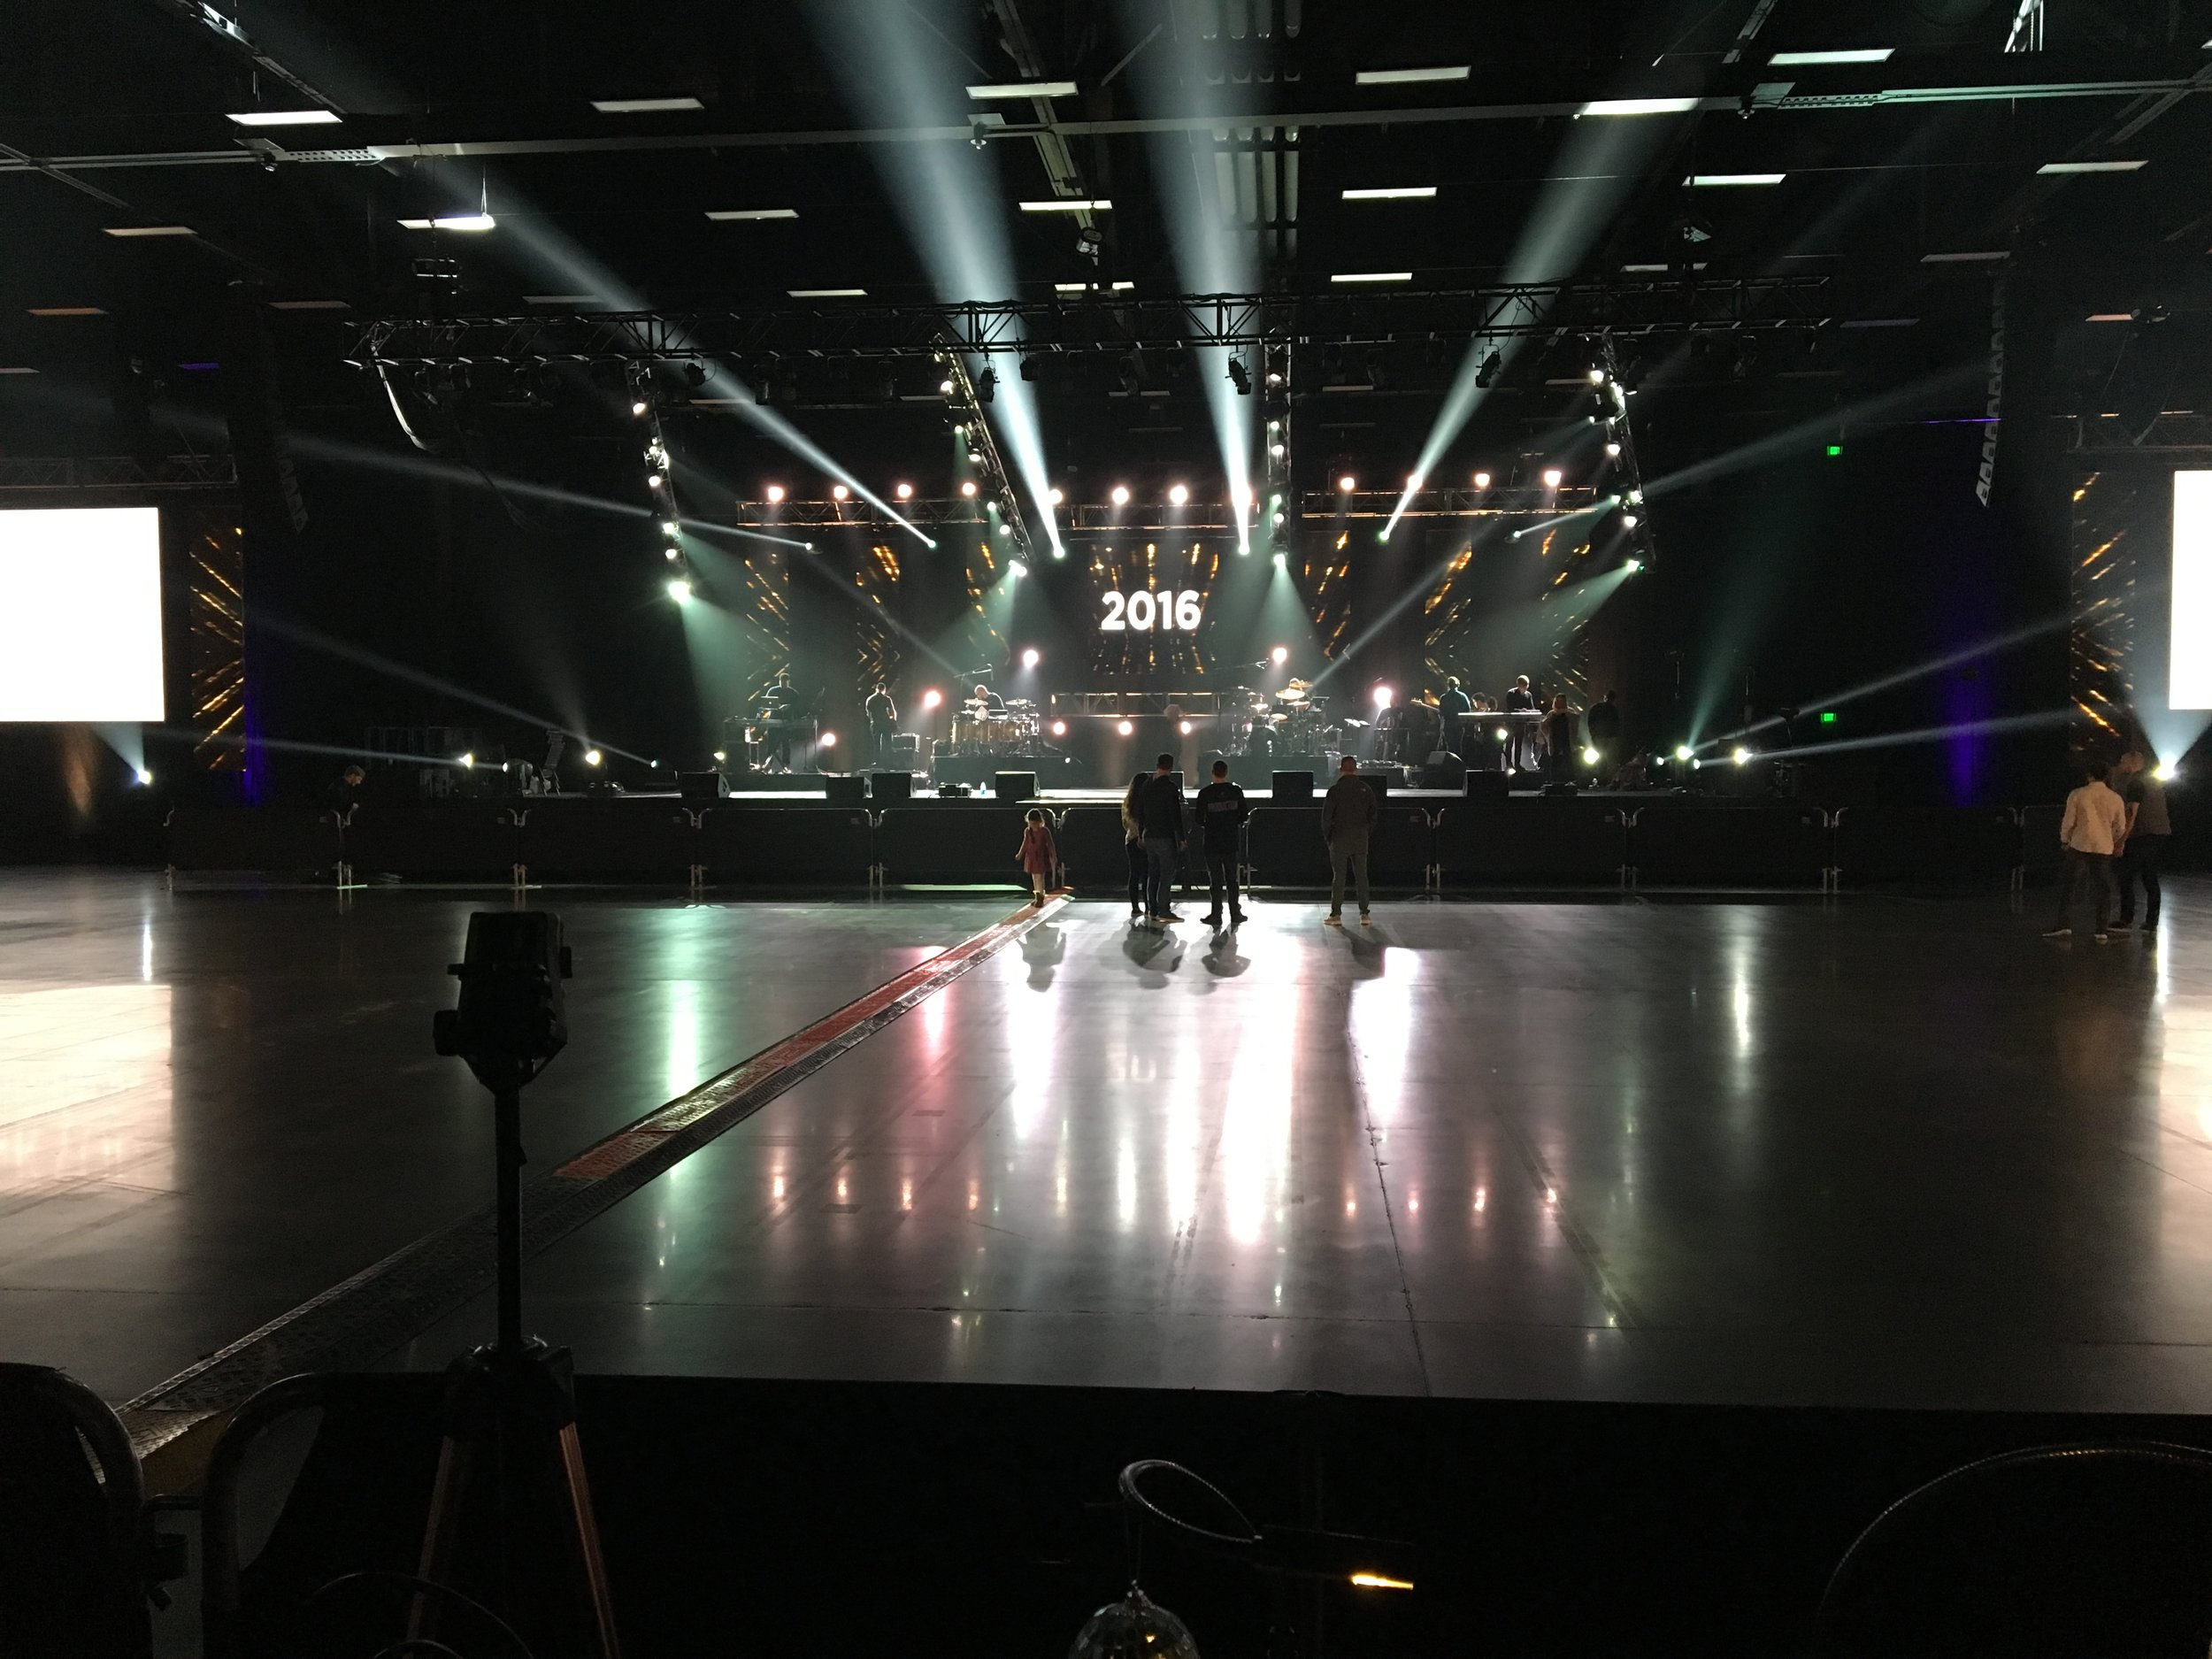 Winter Ramp 2015-2016  Le Conte Convention Center, Pigeon Forge, TN